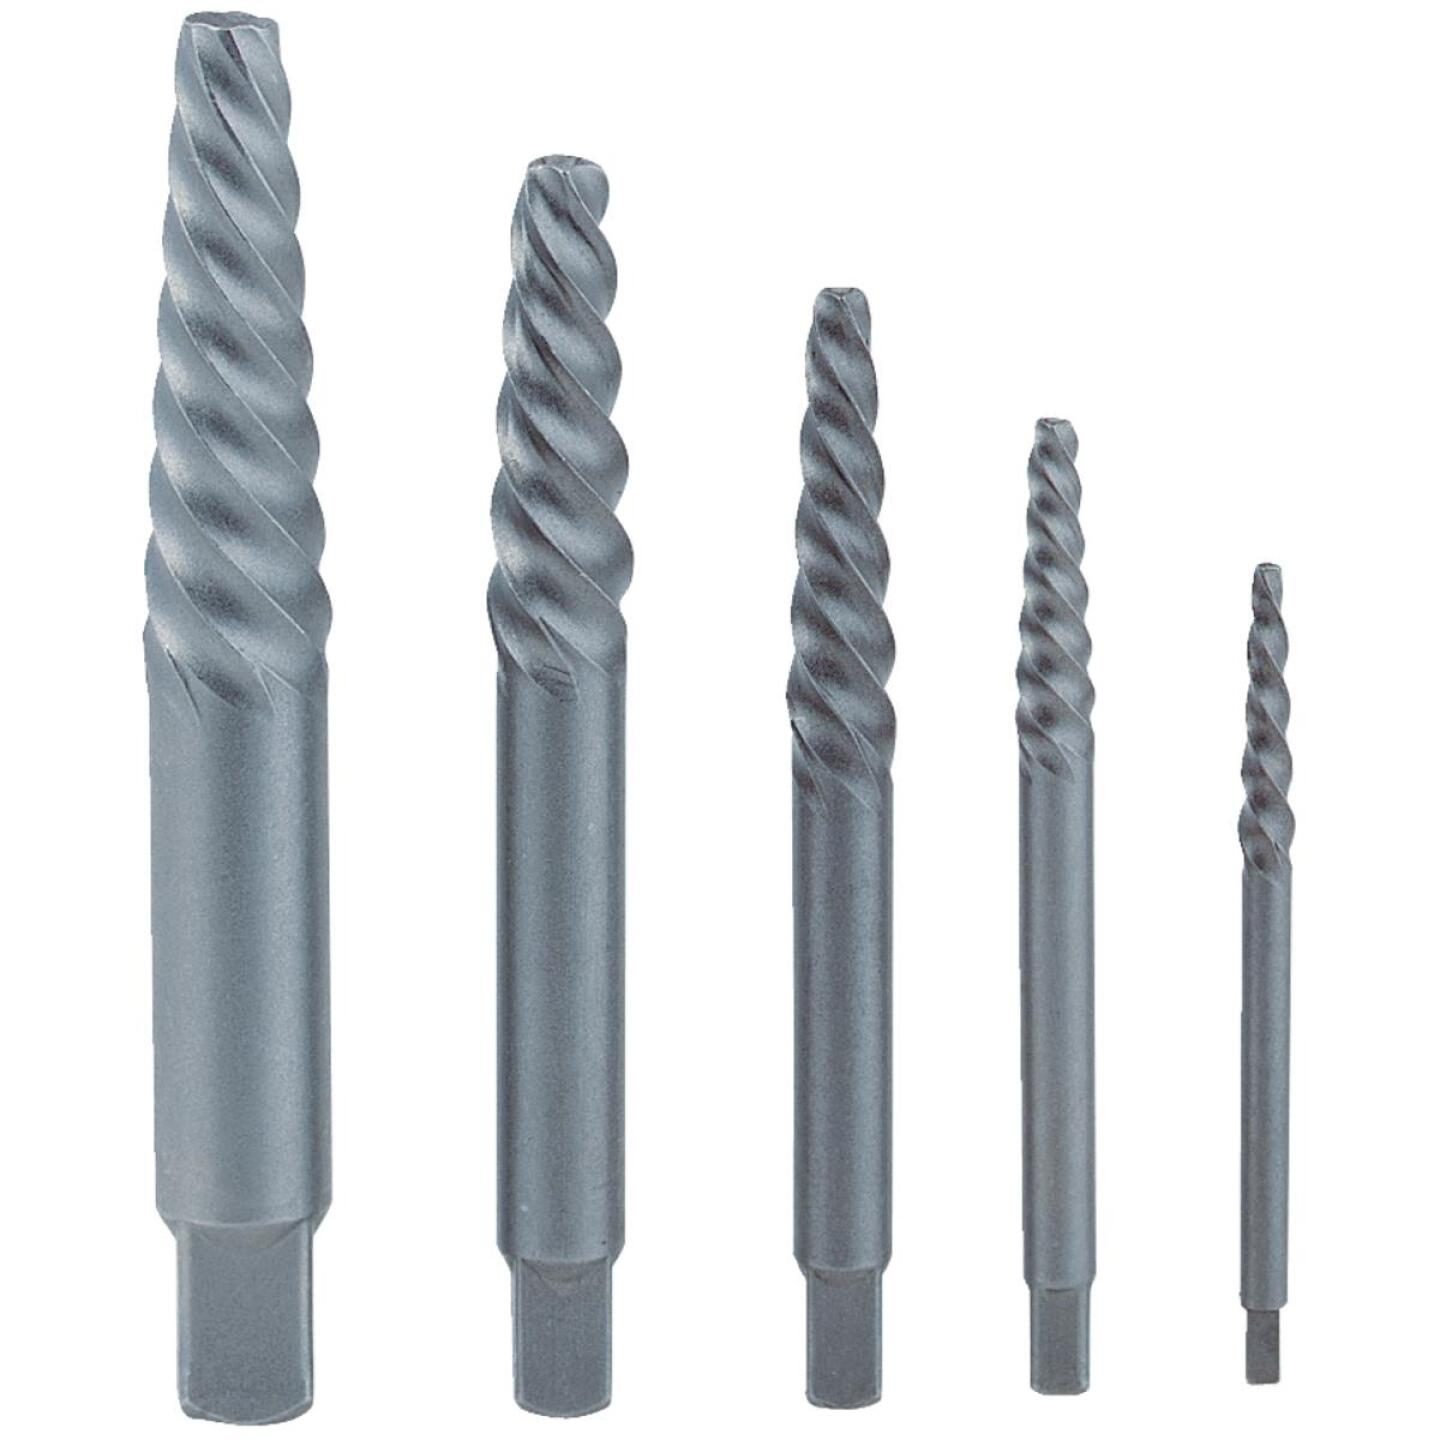 Irwin 5-Piece Screw Extractor Set Image 1